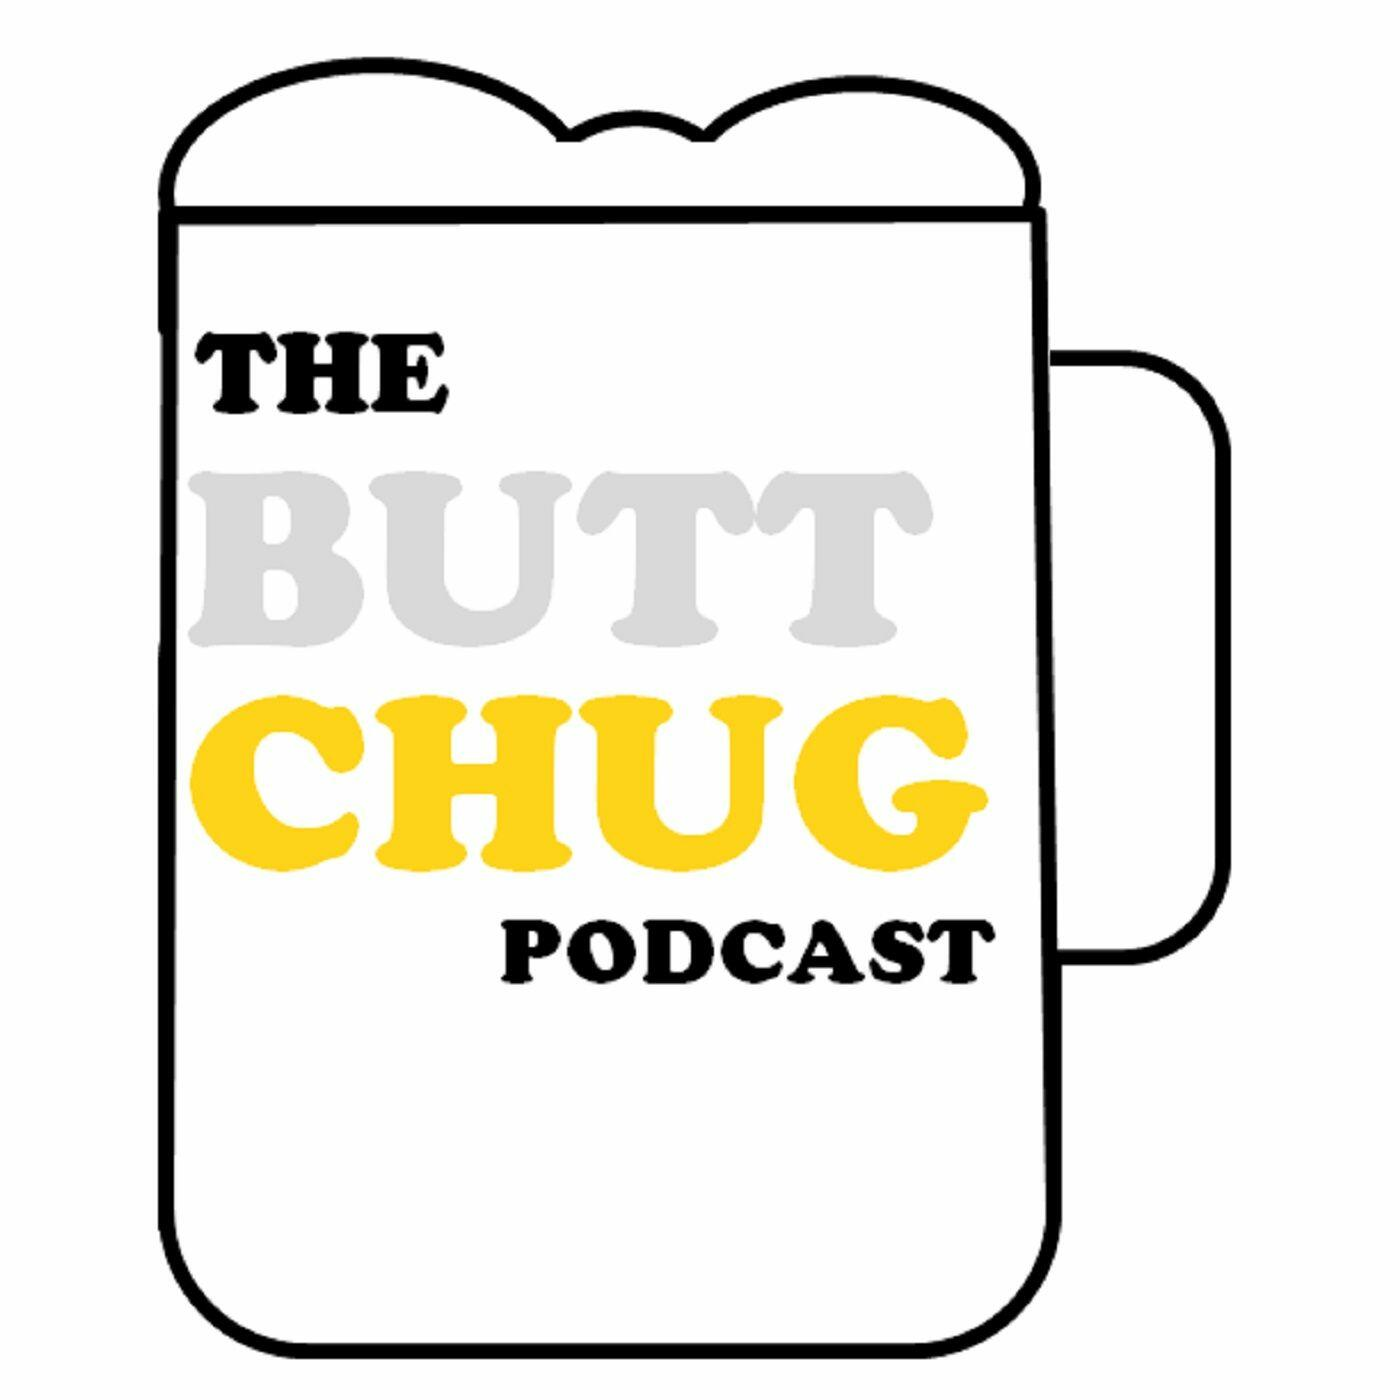 Listen to the The Butt Chug Podcast Episode - 031 Jt and the